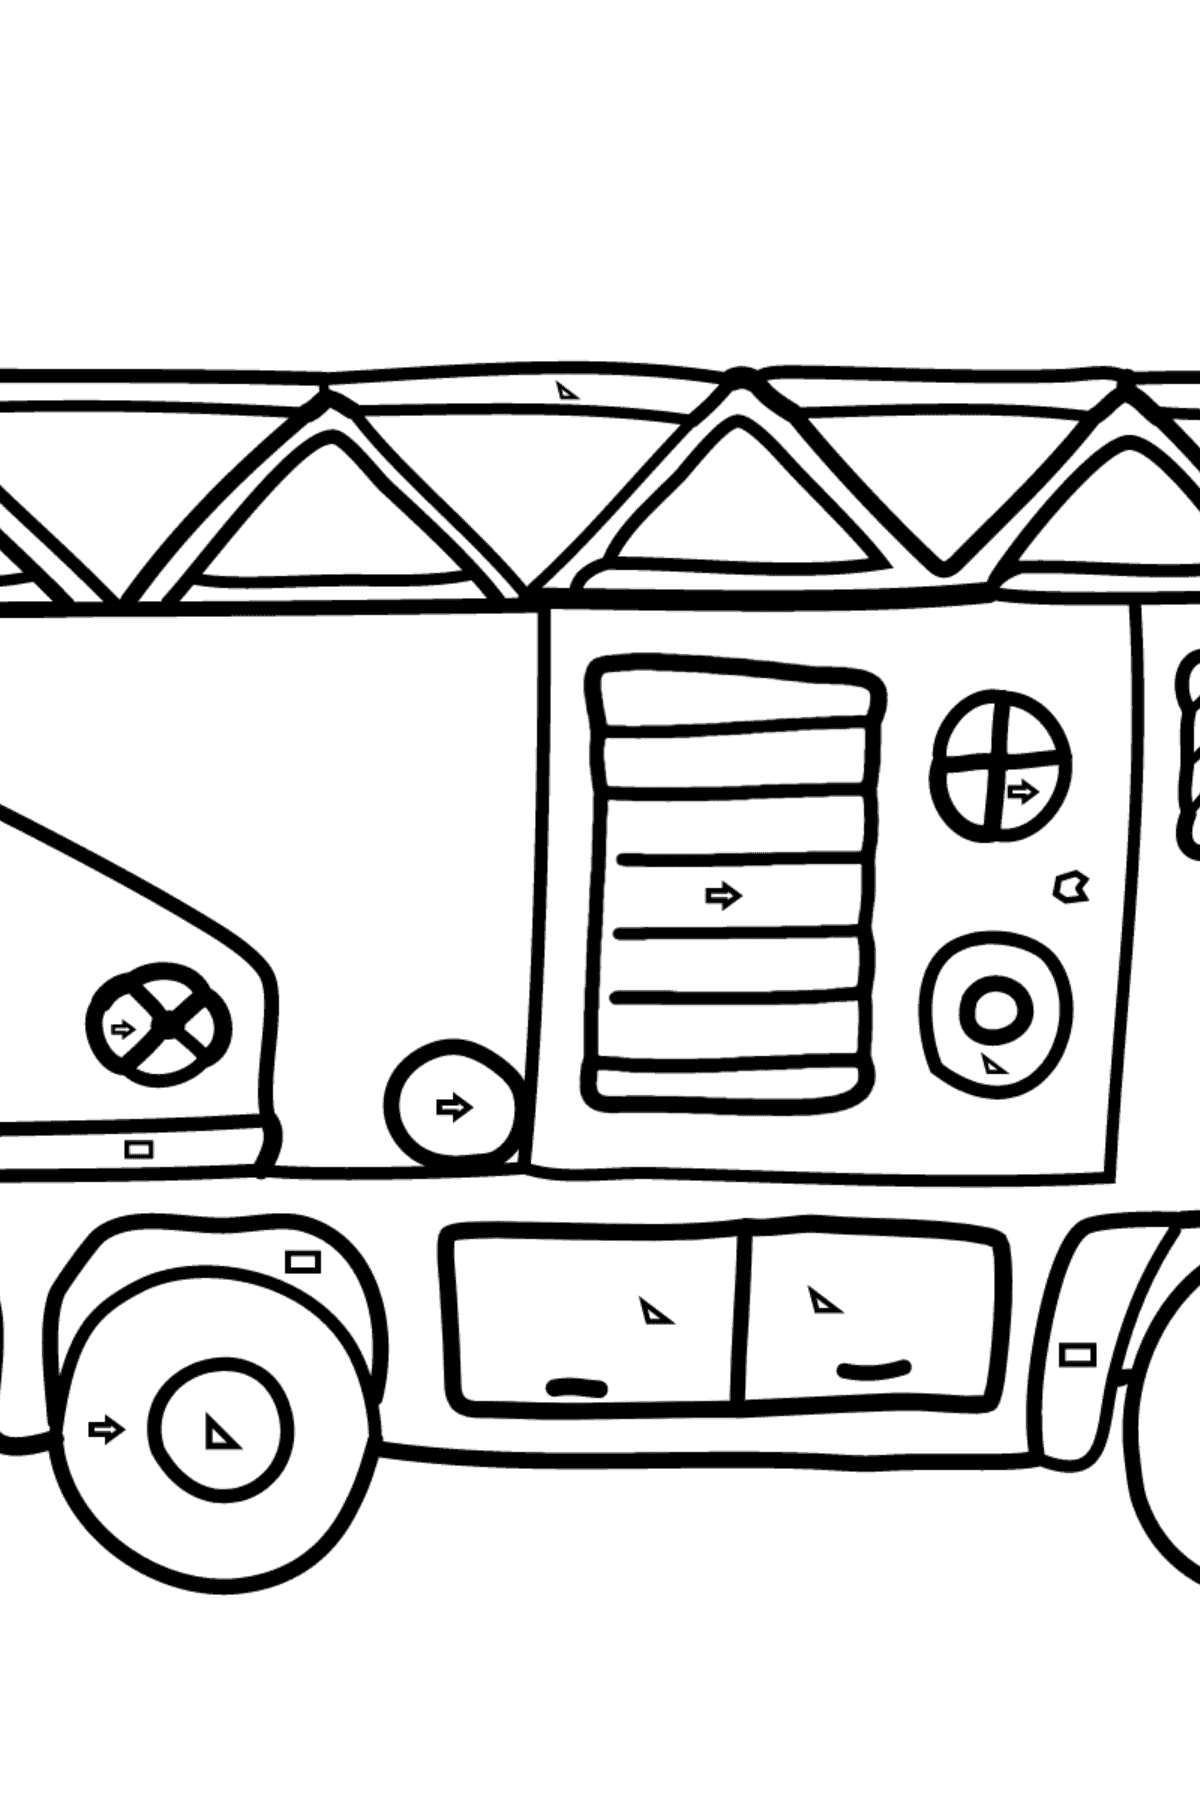 Coloring Page - A Fire Truck for Children  - Color by Geometric Shapes